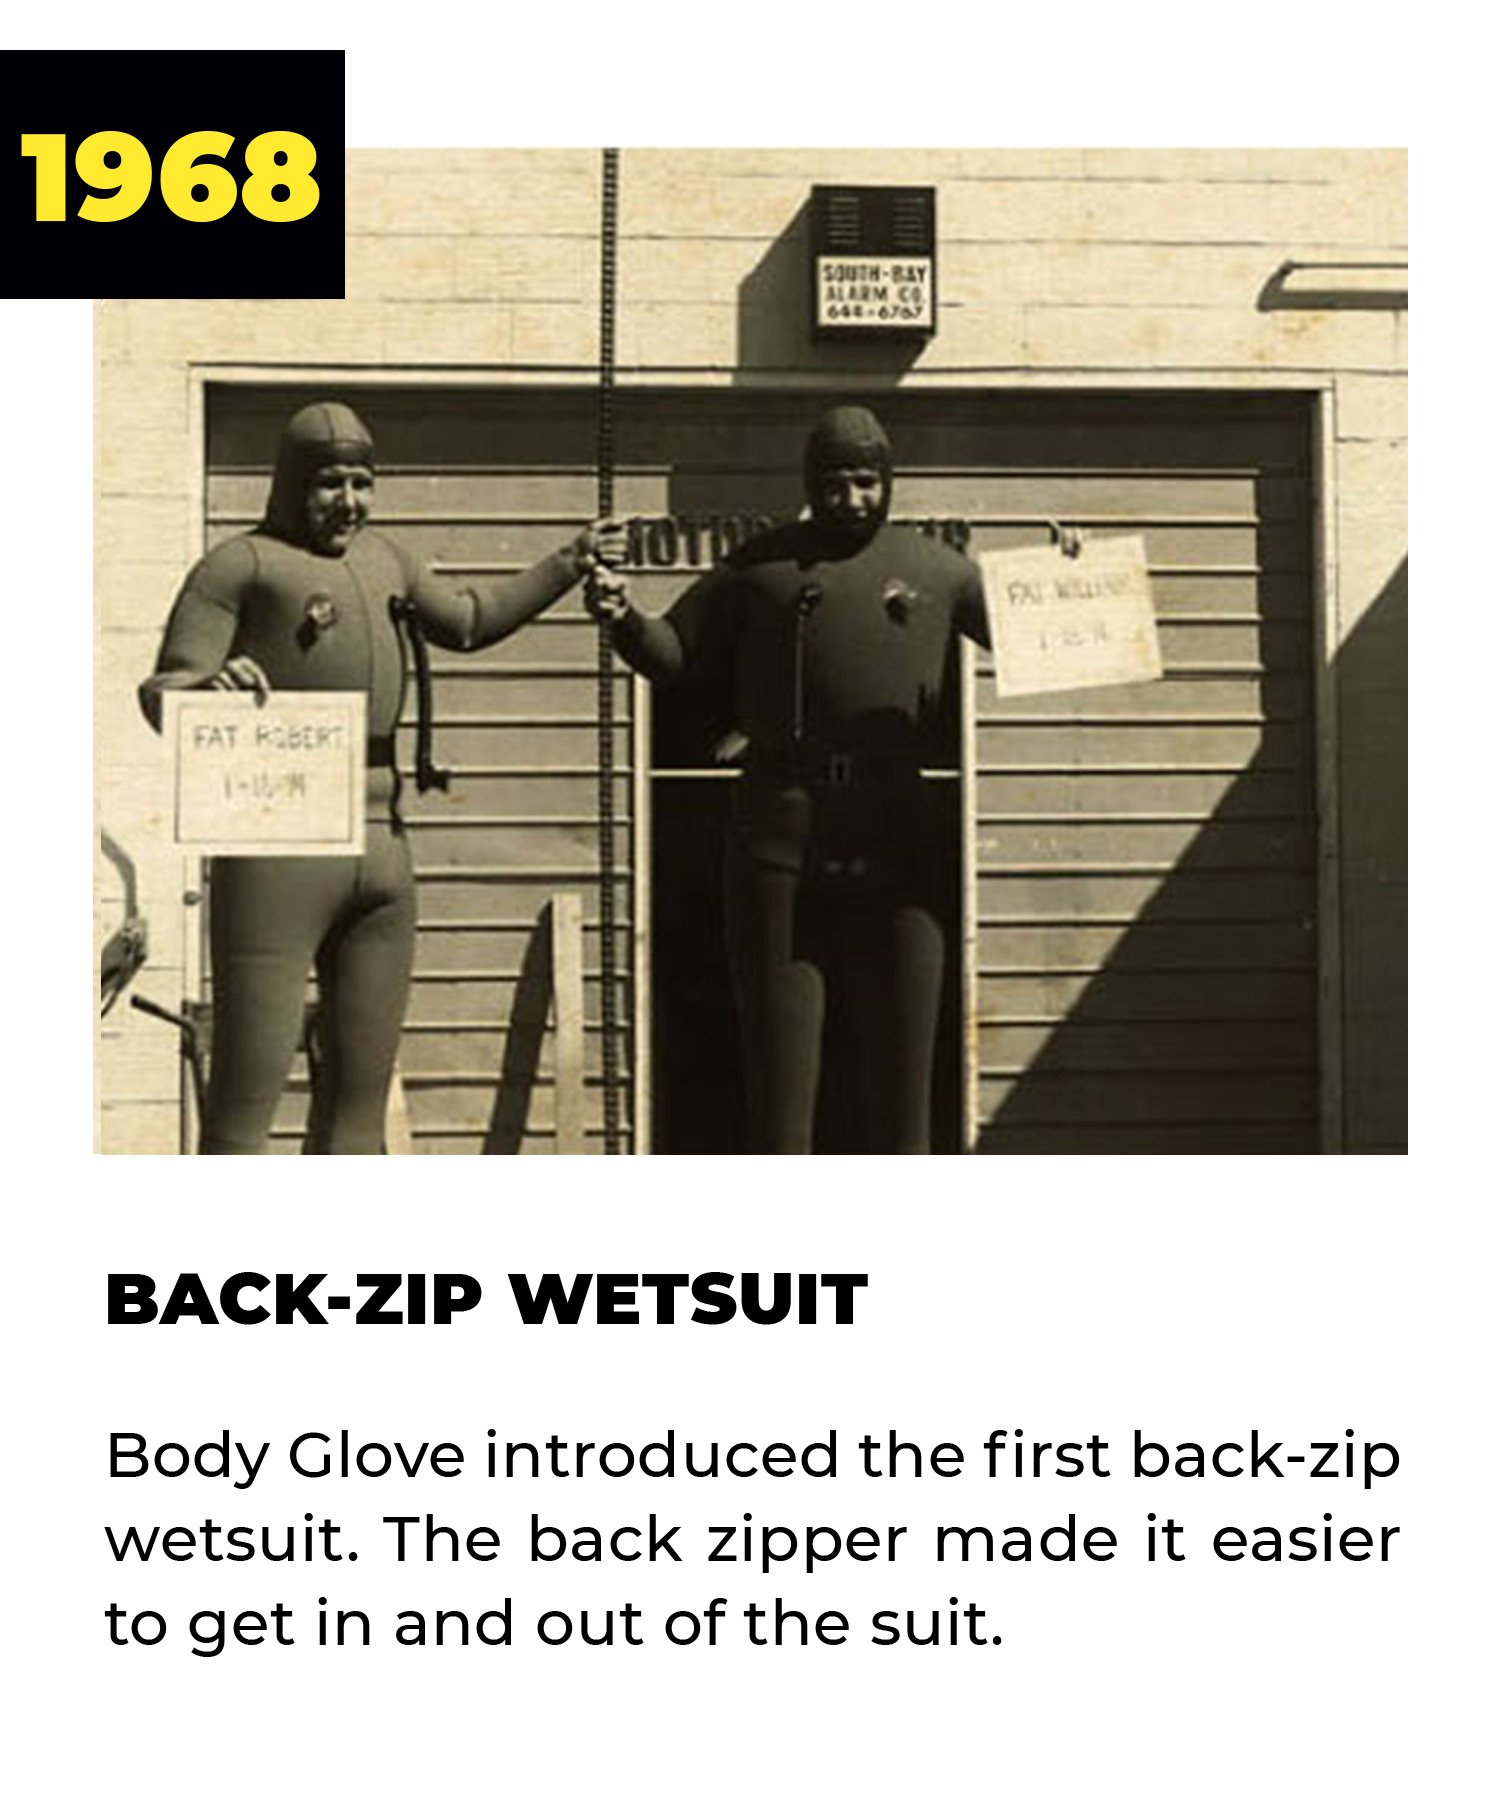 1968 | Back-Zip Wetsuit | Body Glove introduced the first back-zip wetsuit. The back zipper made it easier to get in and out of the suit.